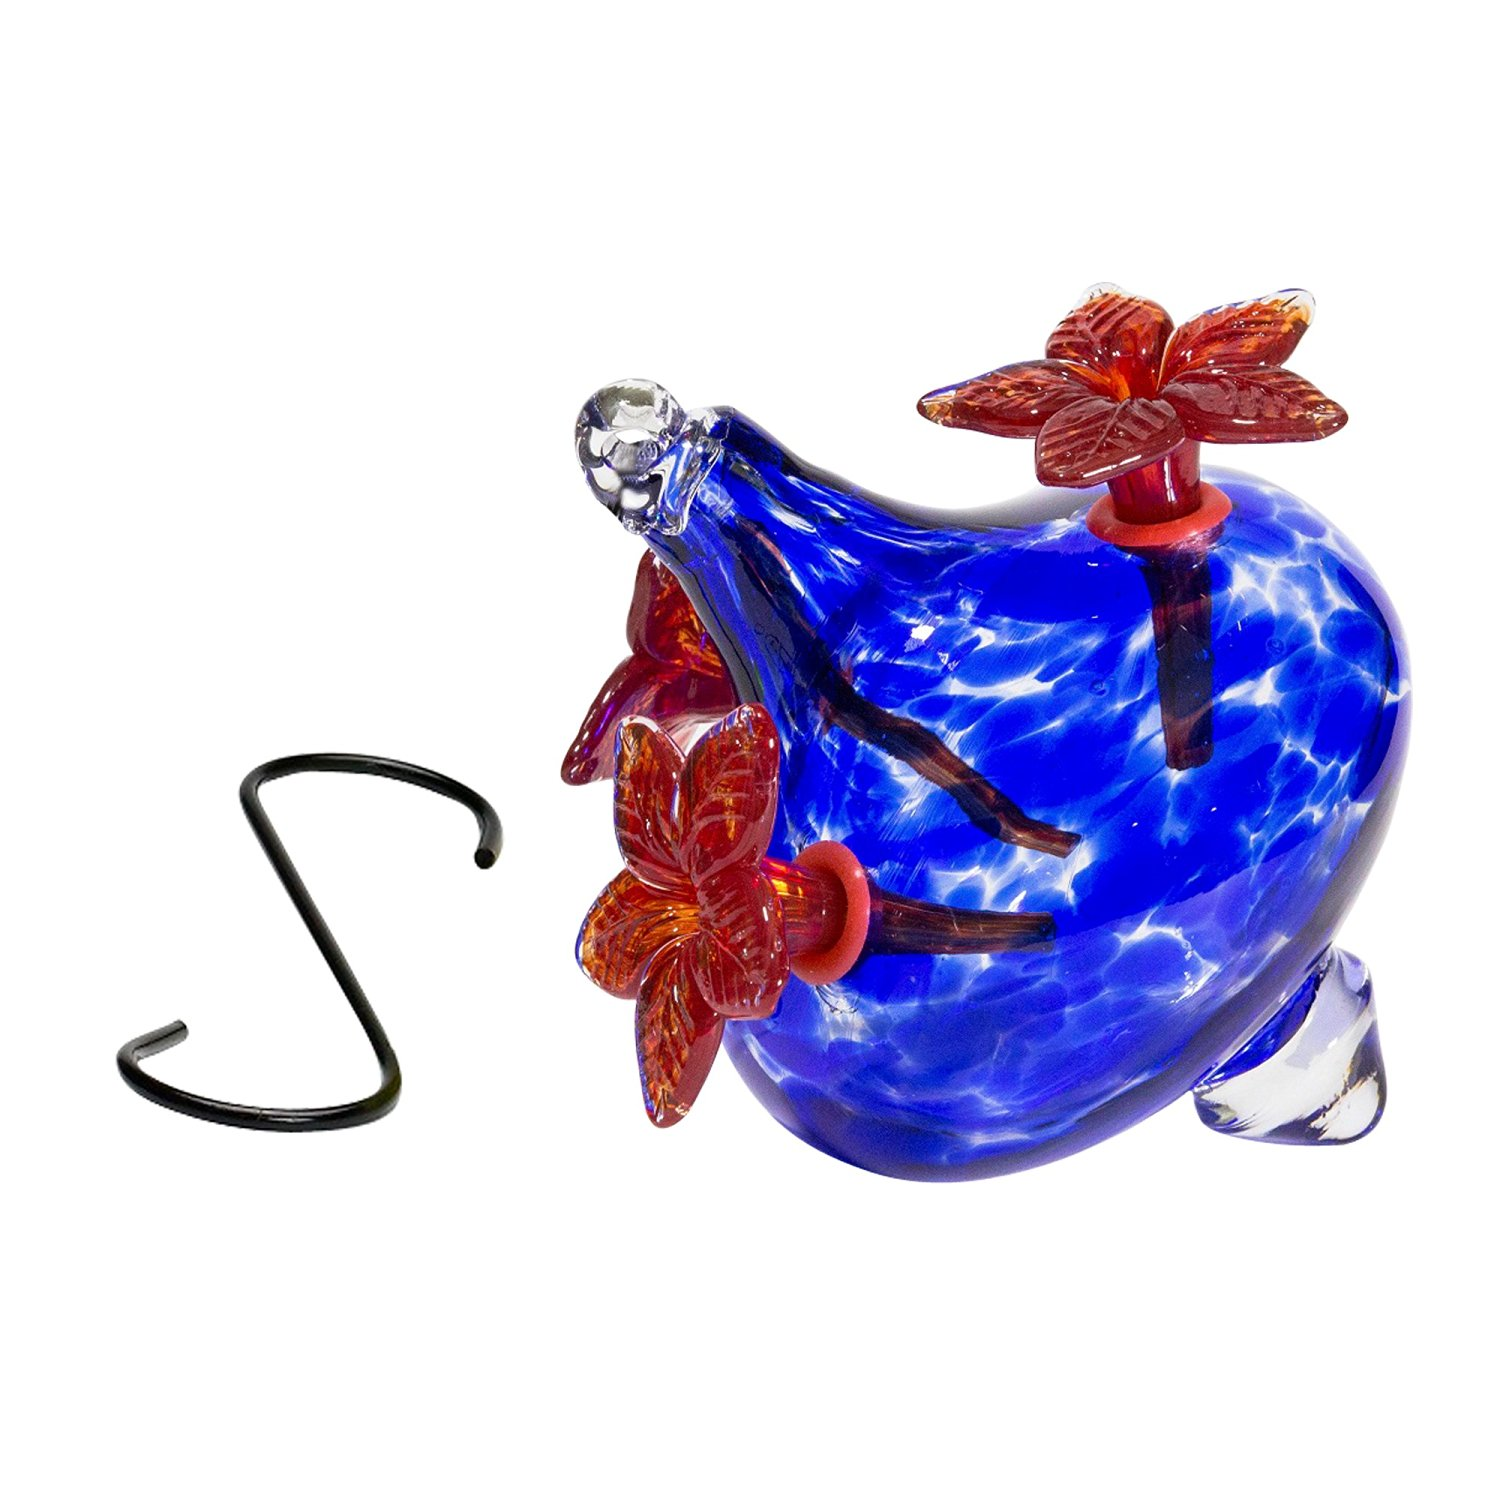 Blown Glass Hummingbird Feeder Flower Vase With Blue